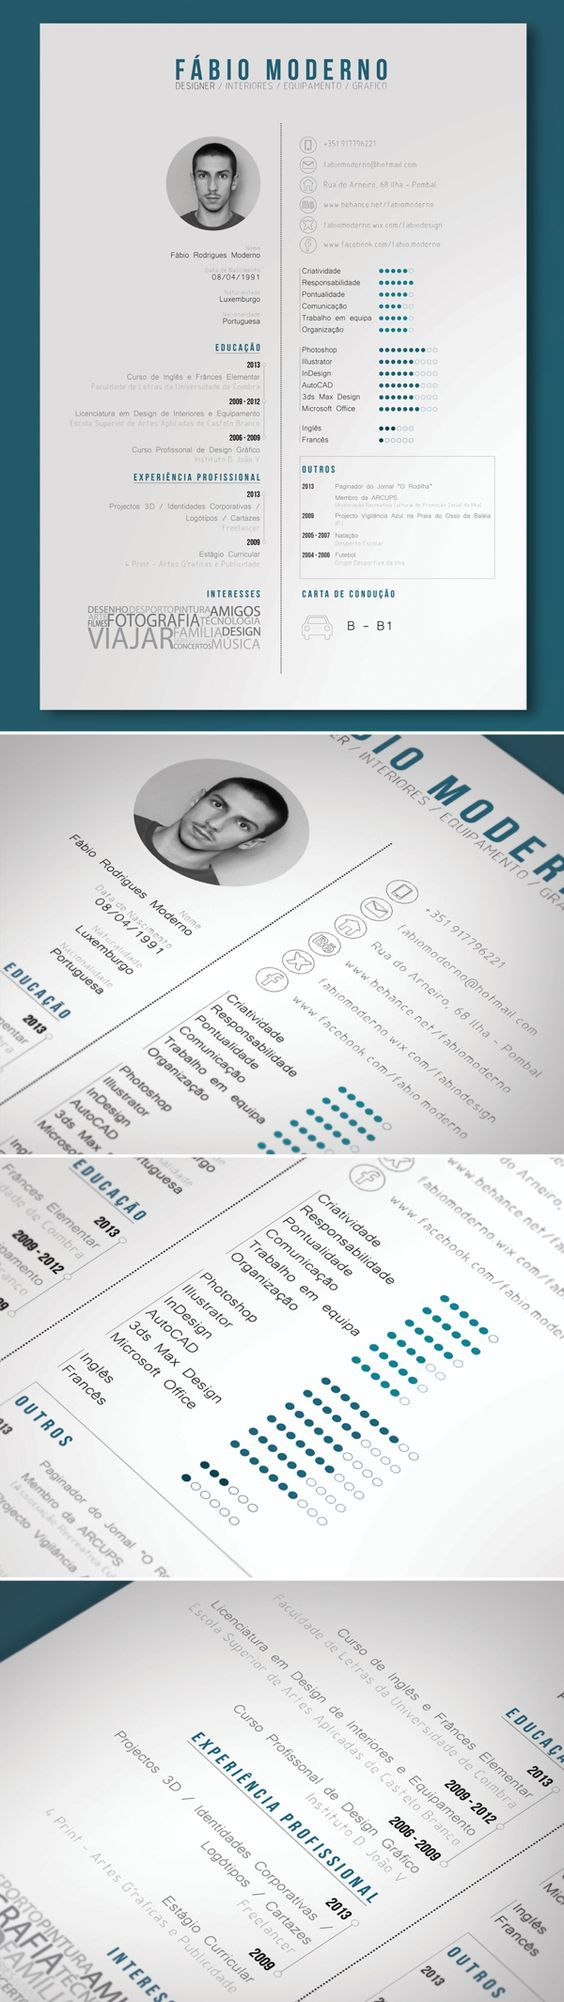 7 Best CV Images On Pinterest